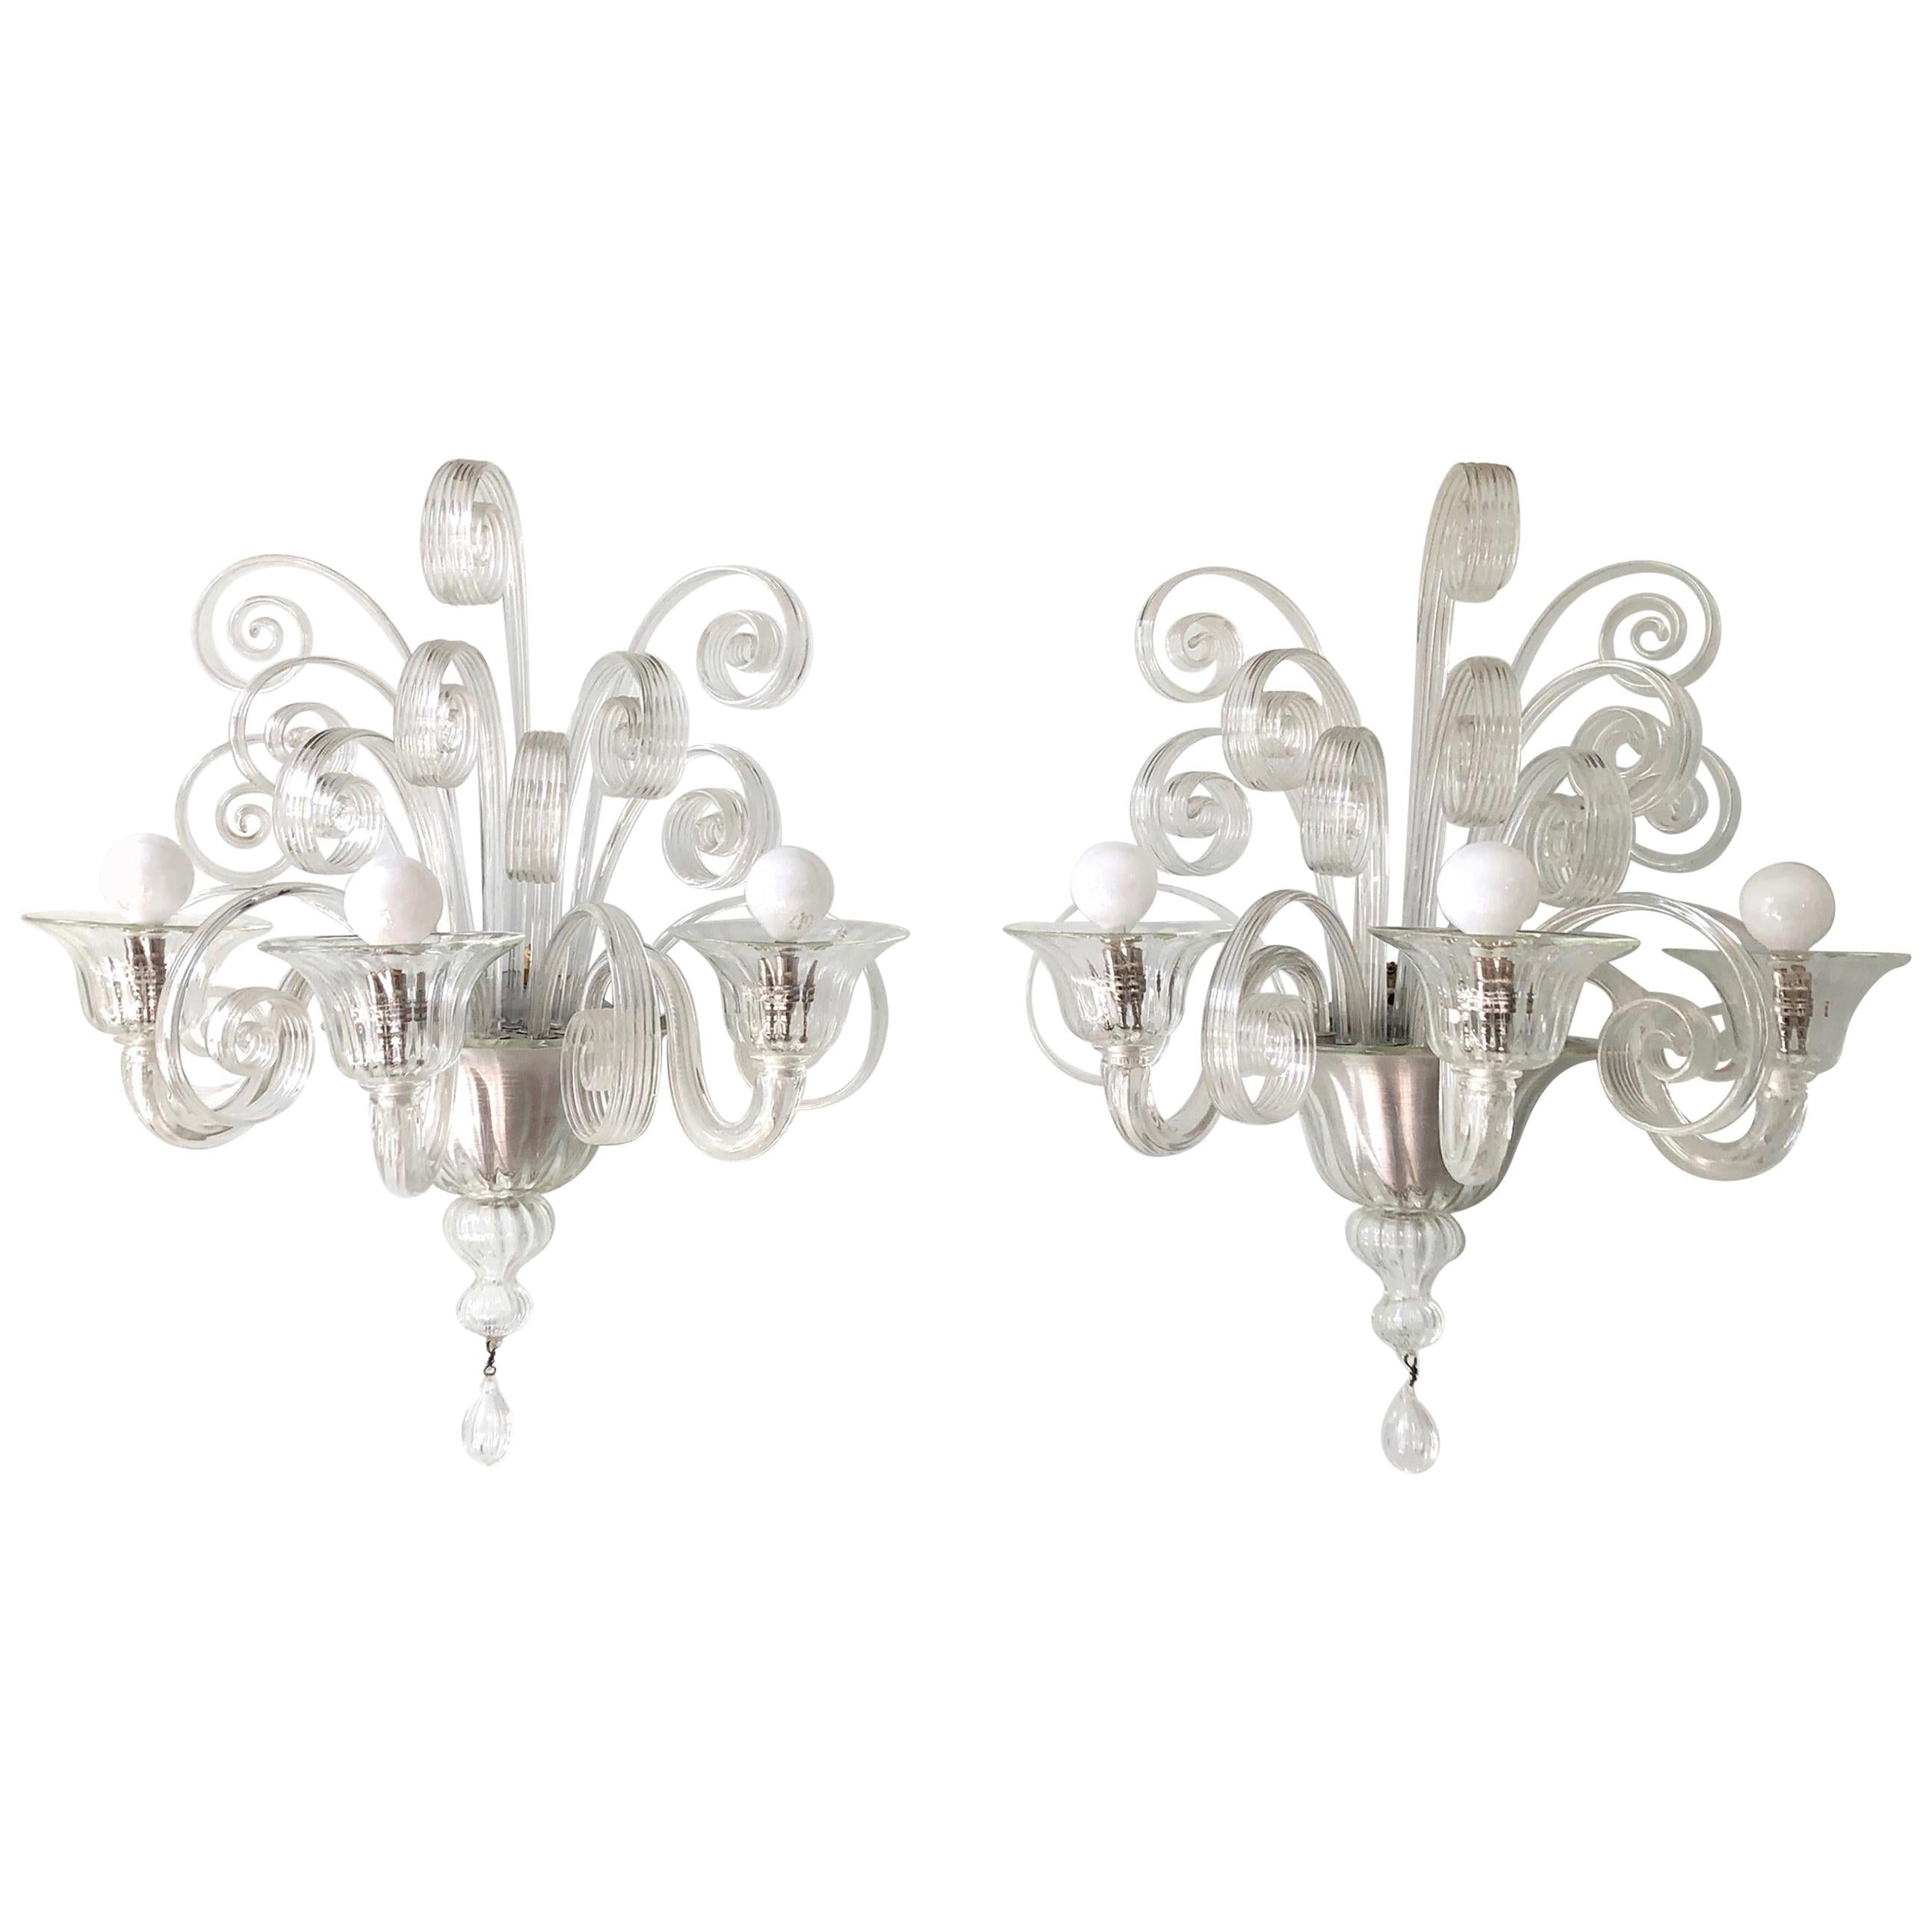 Pair of 1930s Veronese Glass Sconces